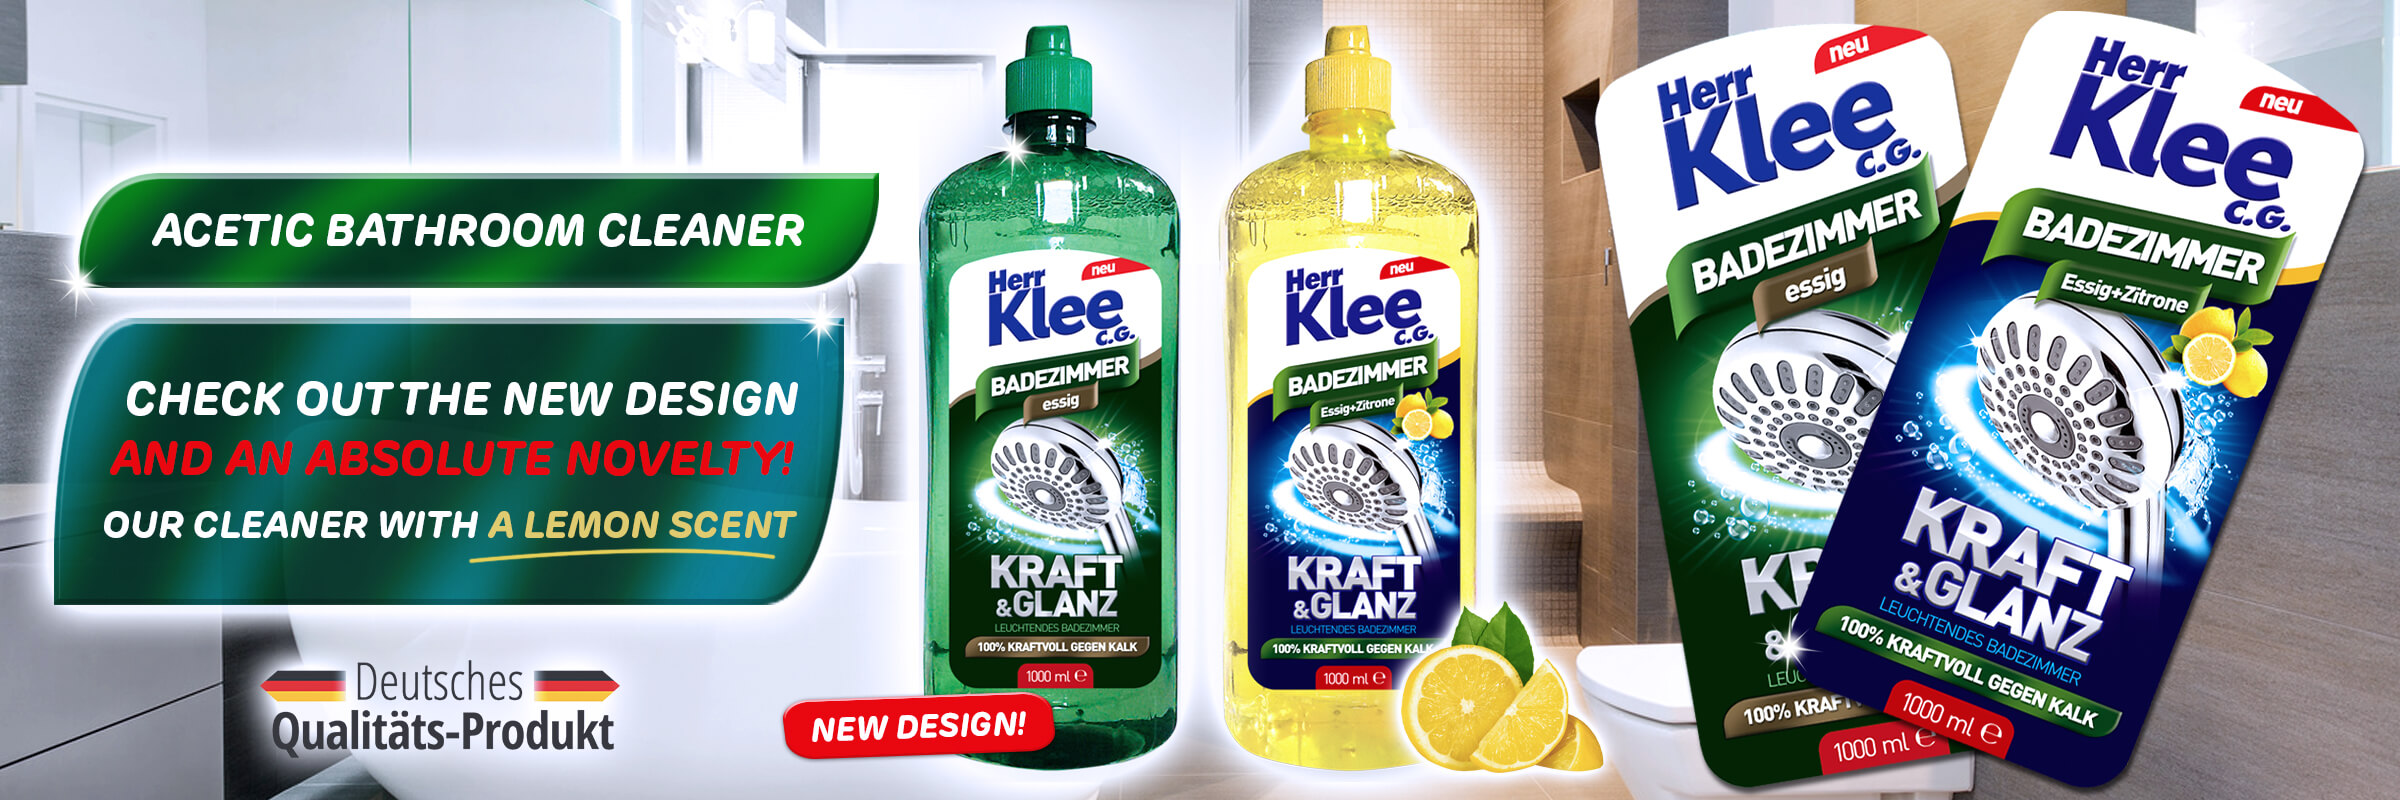 New! Herr Klee C.G. acetic liquid bathroom cleaner with a lemon scent!